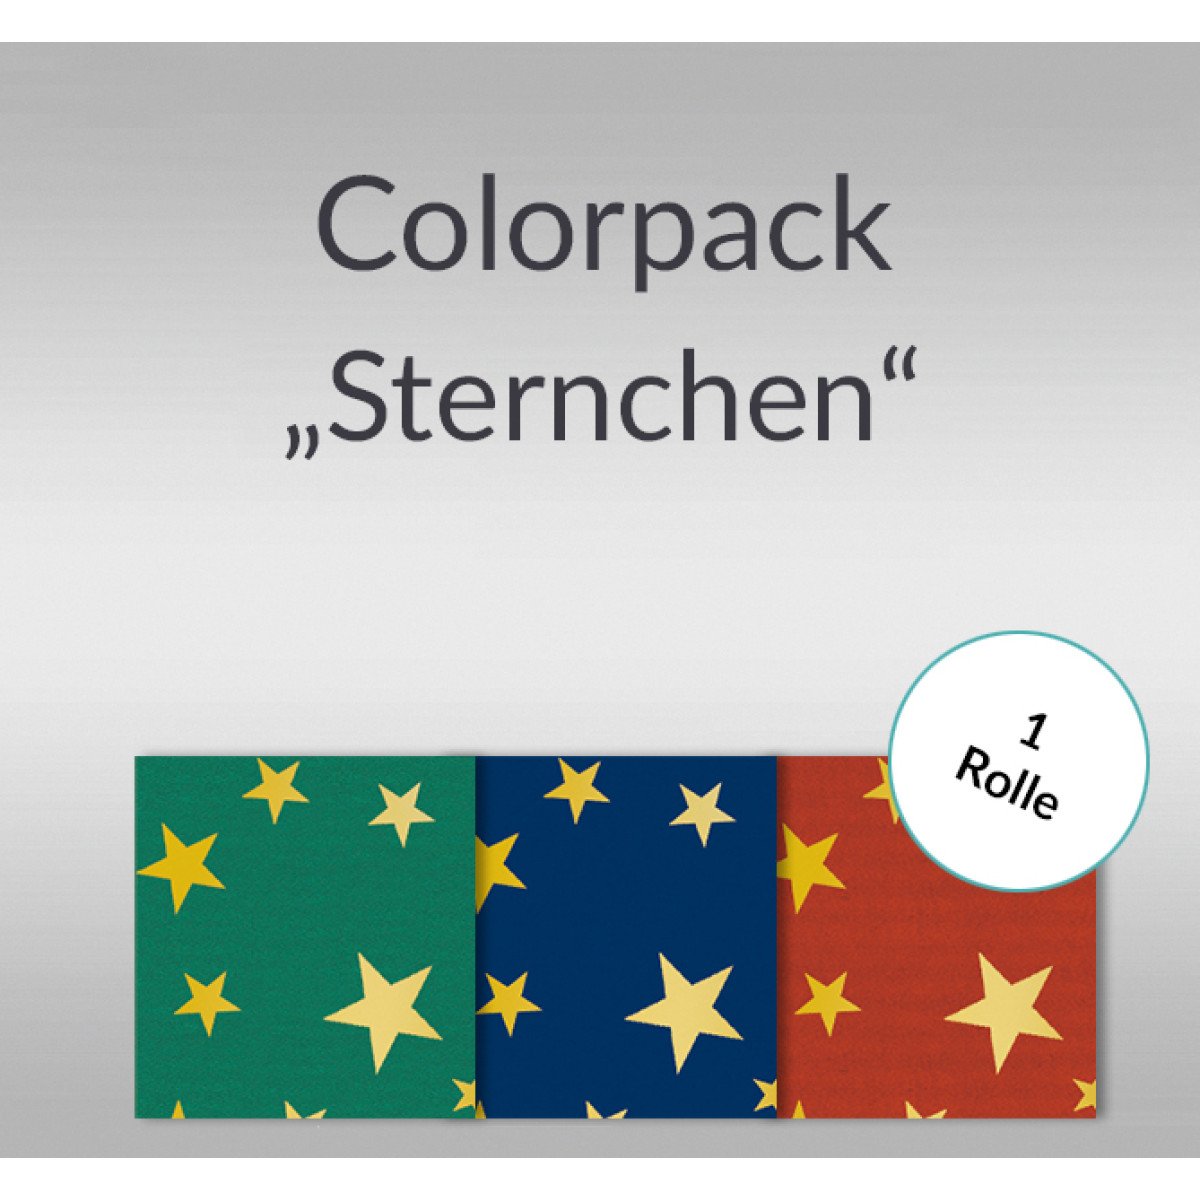 Sternchen- Colorpack 80 g/qm - 1 Rolle